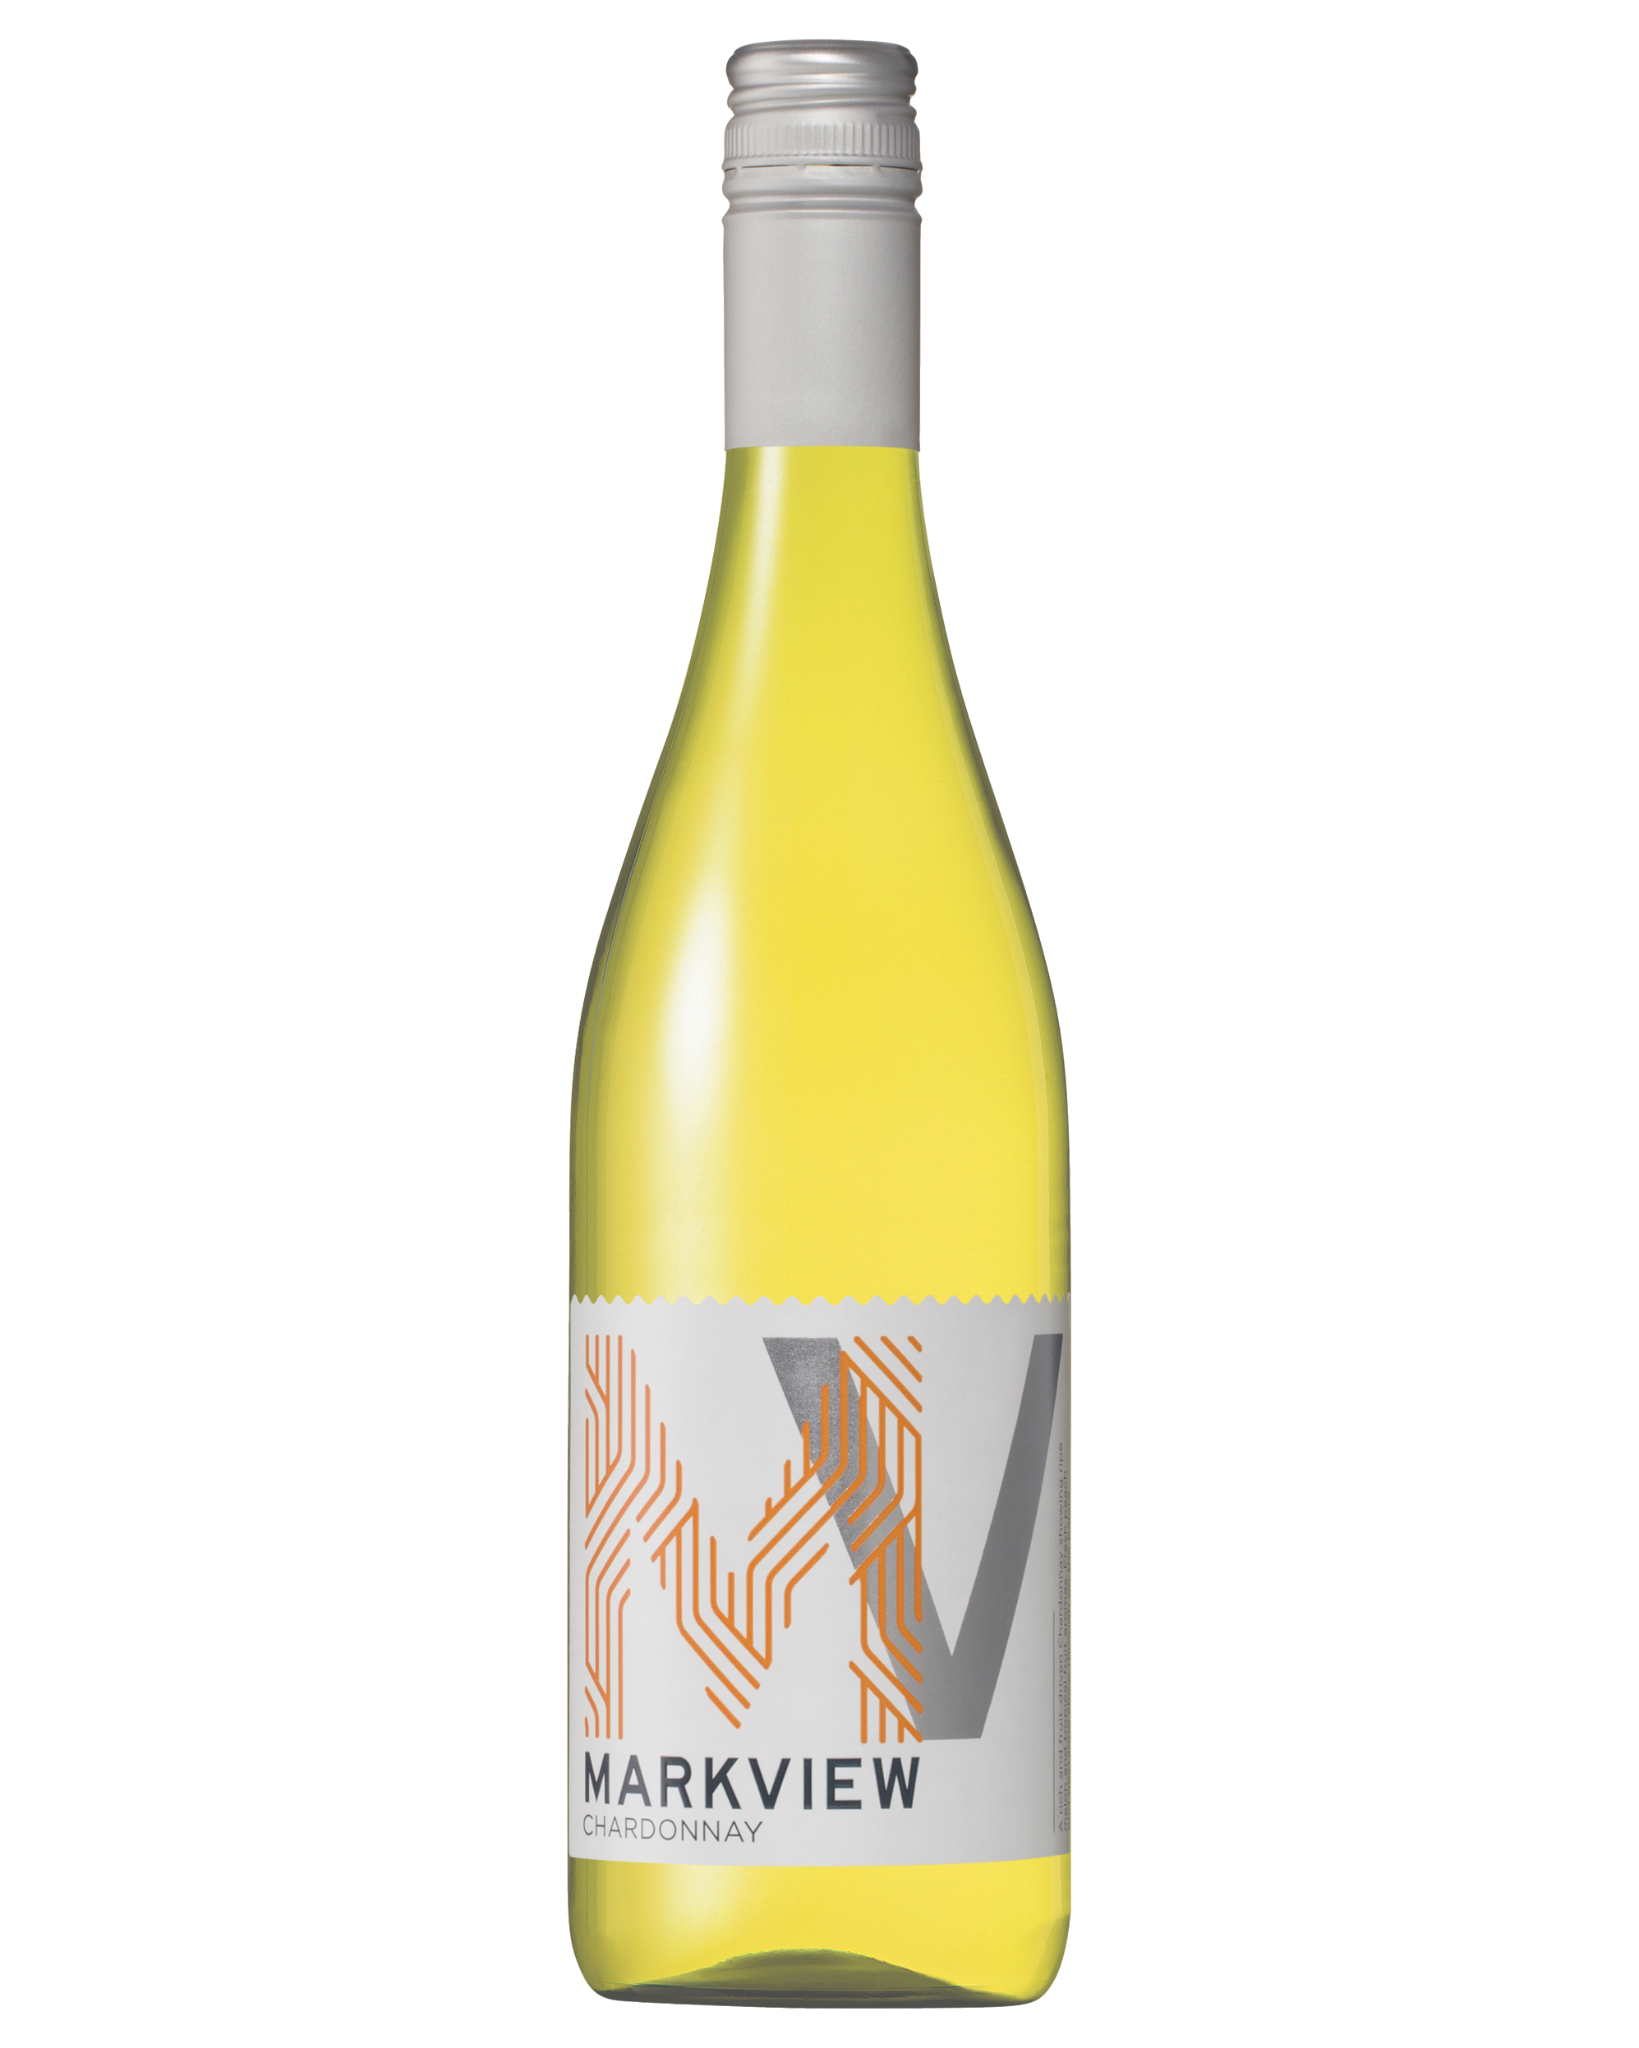 McWilliams Markview Chardonnay